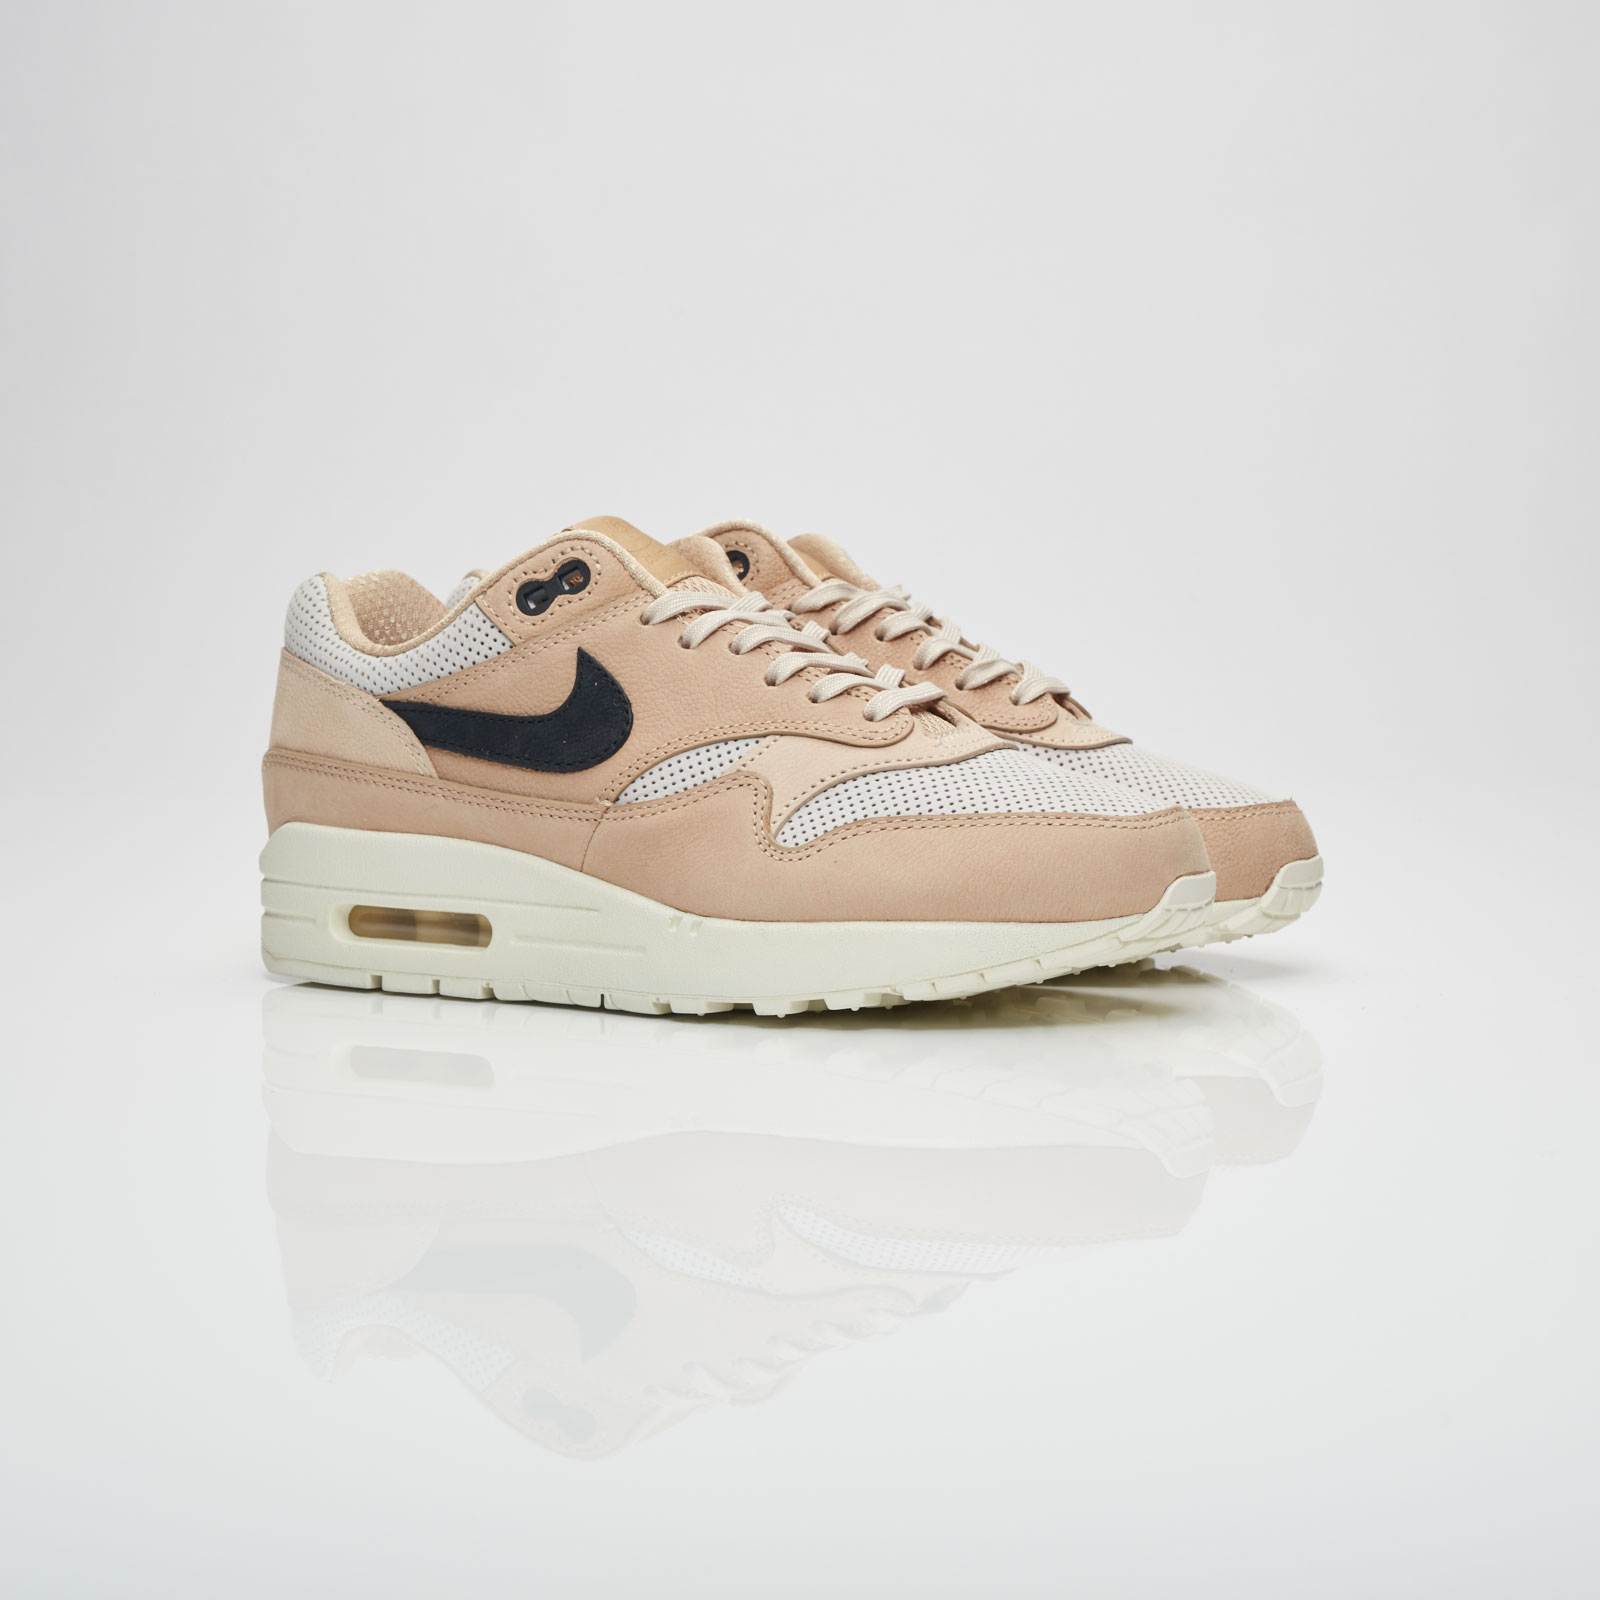 17228f853411 Nike Wmns Air Max 1 Pinnacle - 839608-201 - Sneakersnstuff ...